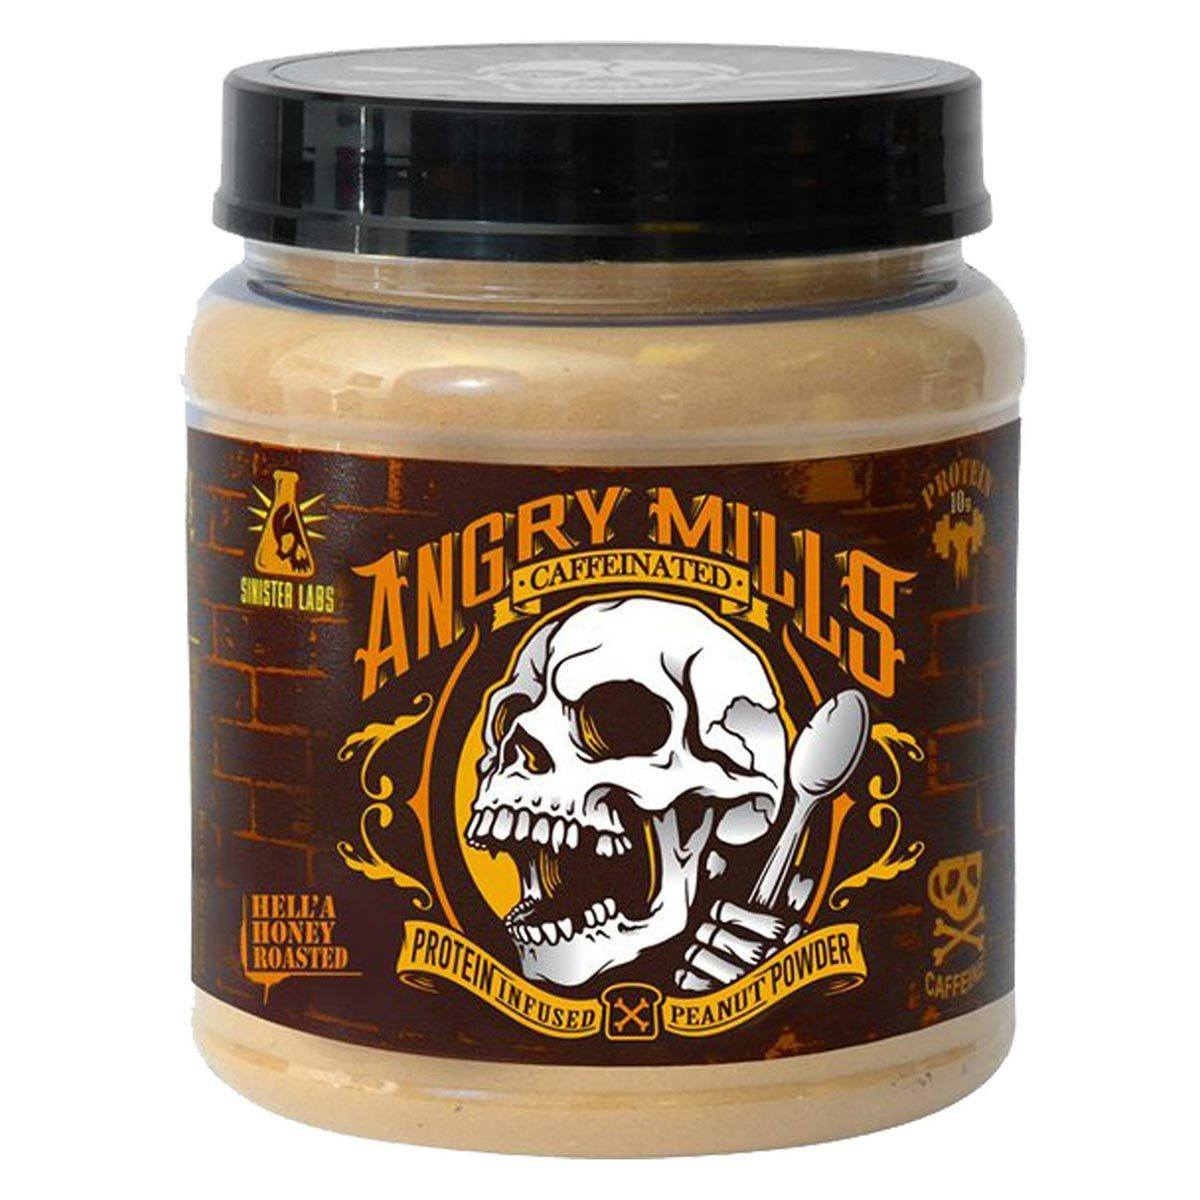 Sinister Labs Angry Mills Protein Infused Peanut Powder Caffeinated Hell'A Honey Roasted Foods & Snacks Sinister Labs  (1059325804587)